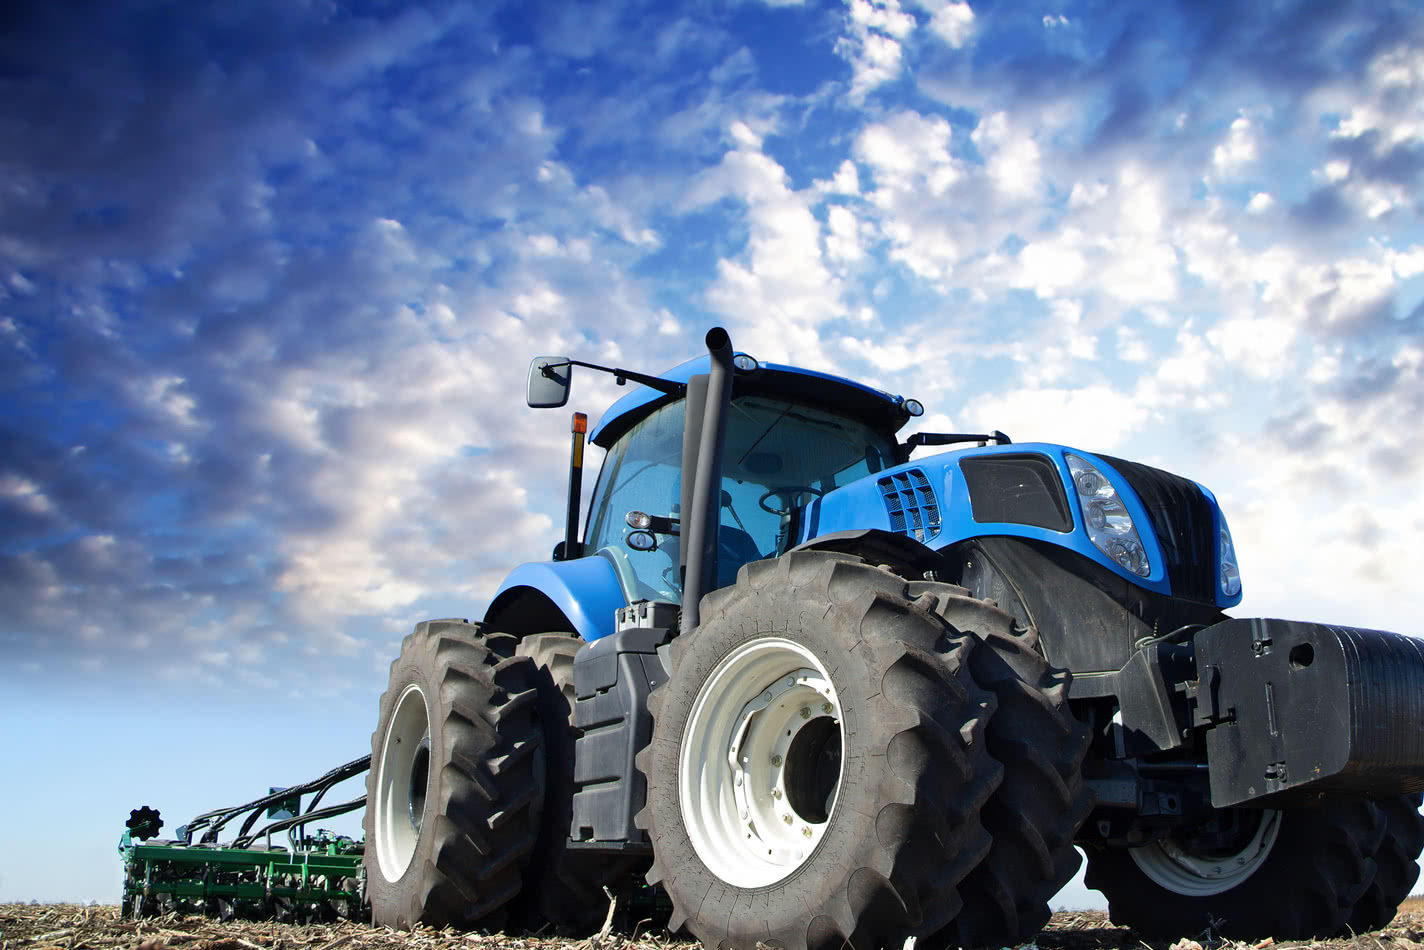 Blue tractor working the field